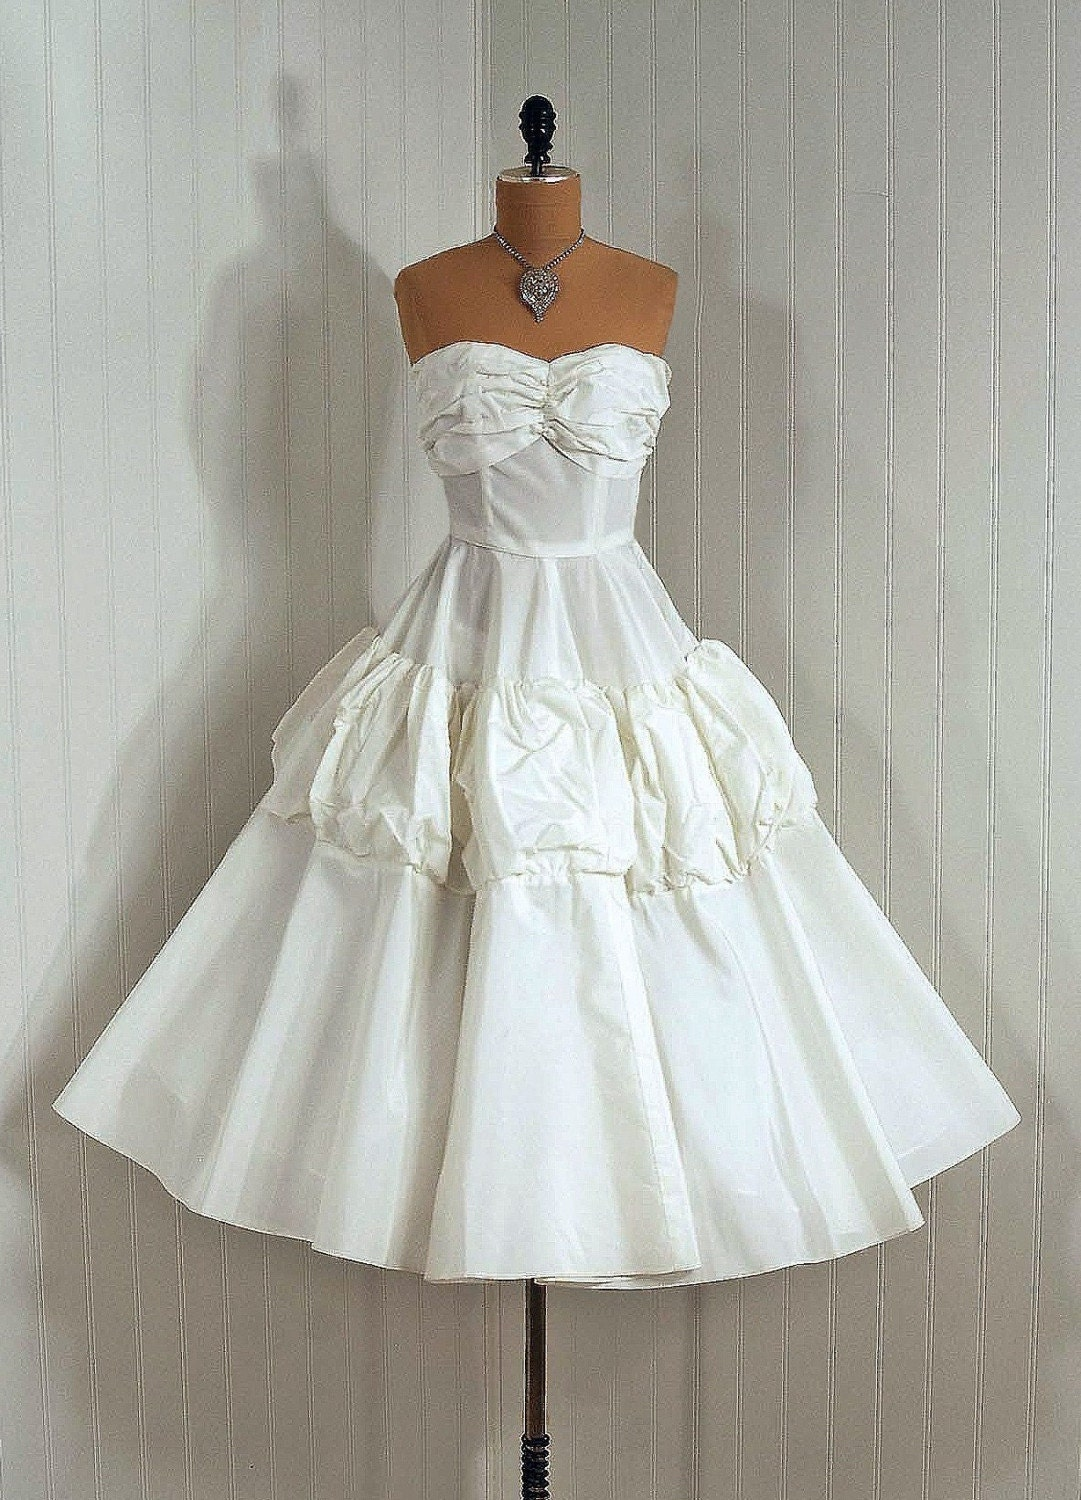 1950's Vintage Elegant Ivory-White Ruched Shelf-Bust Strapless Plunge Sculpted Silk-Taffeta Couture Rockabilly Bombshell Circle-Skirt Wedding Party Cocktail Dress